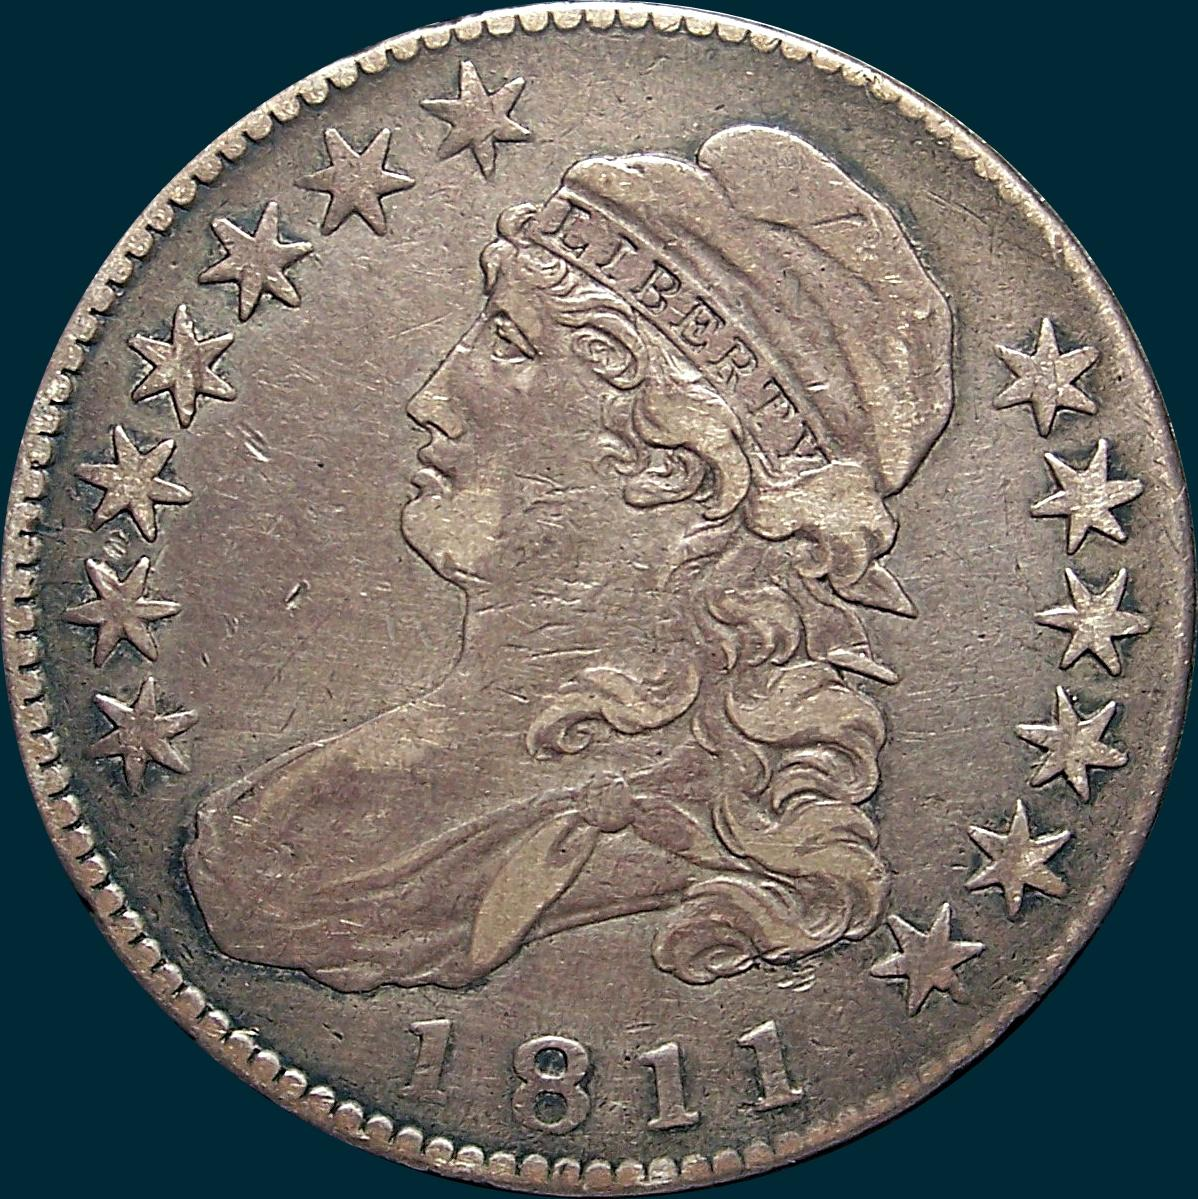 1811 O-104, Large 8, Capped bust half dollar